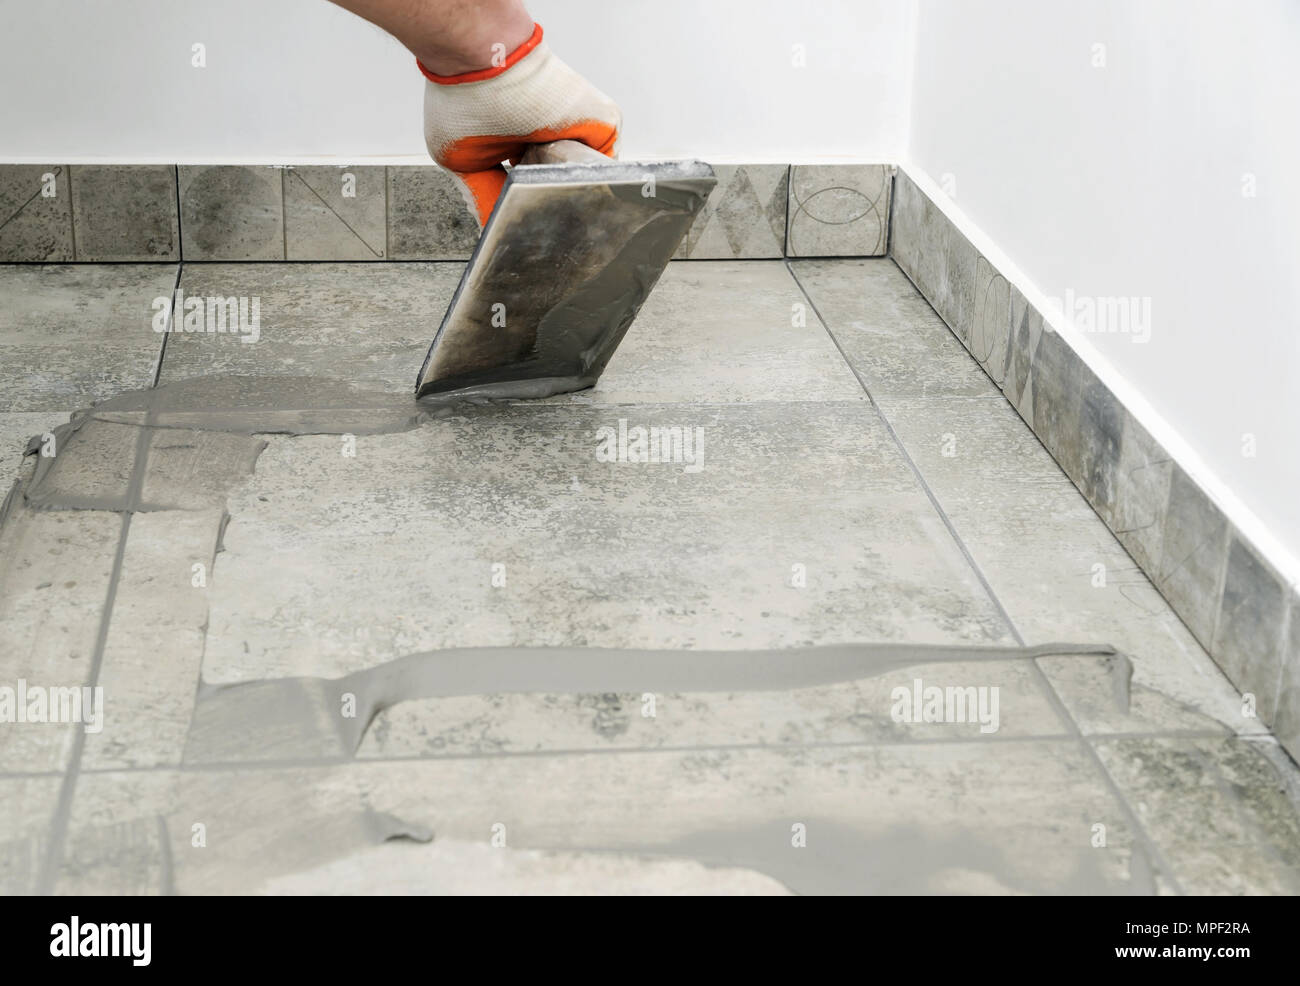 Grouting Ceramic Tiles Tilers Filling The Space Between Tiles Using